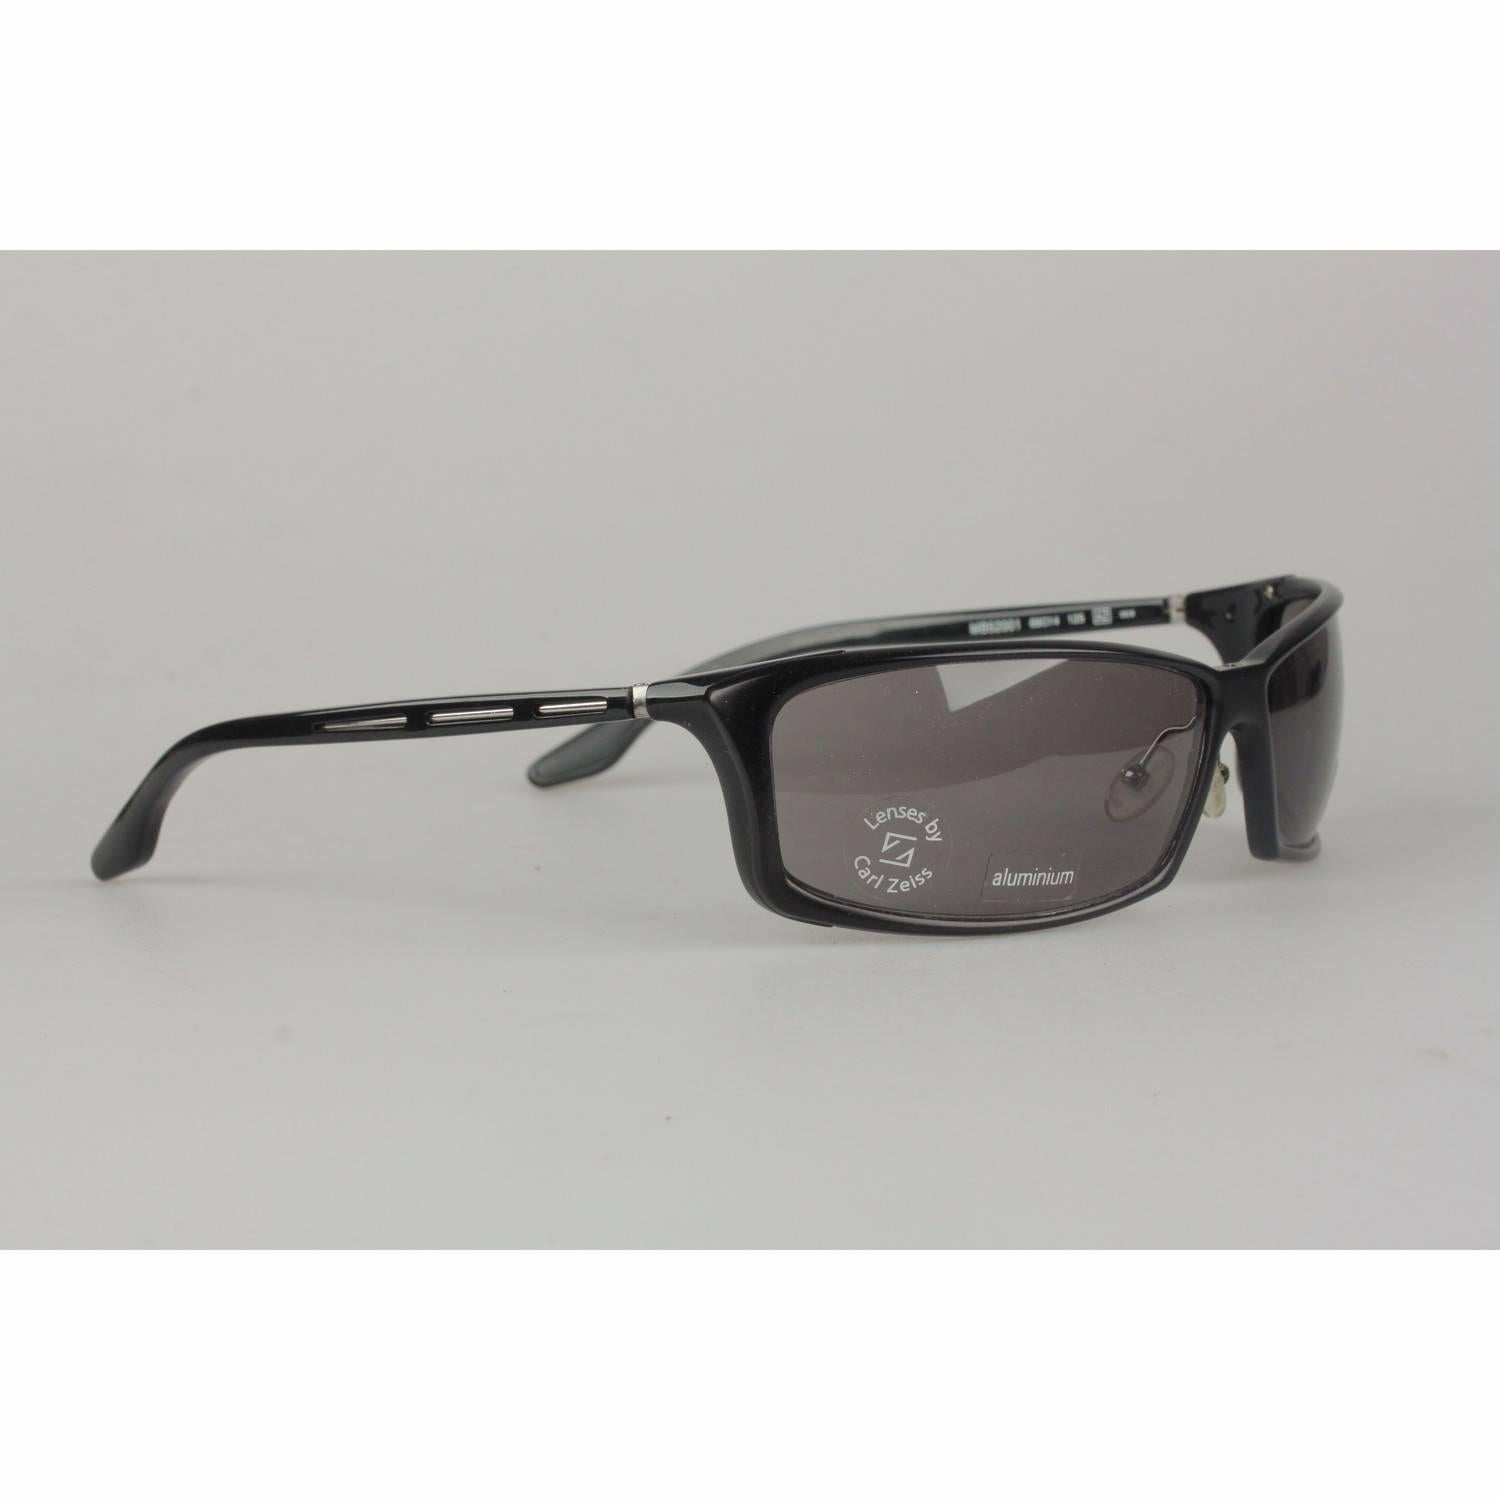 b96aa145eecfb Mercedes-Benz MB52003 Alluminium Zeiss Lens Sunglasses For Sale at 1stdibs